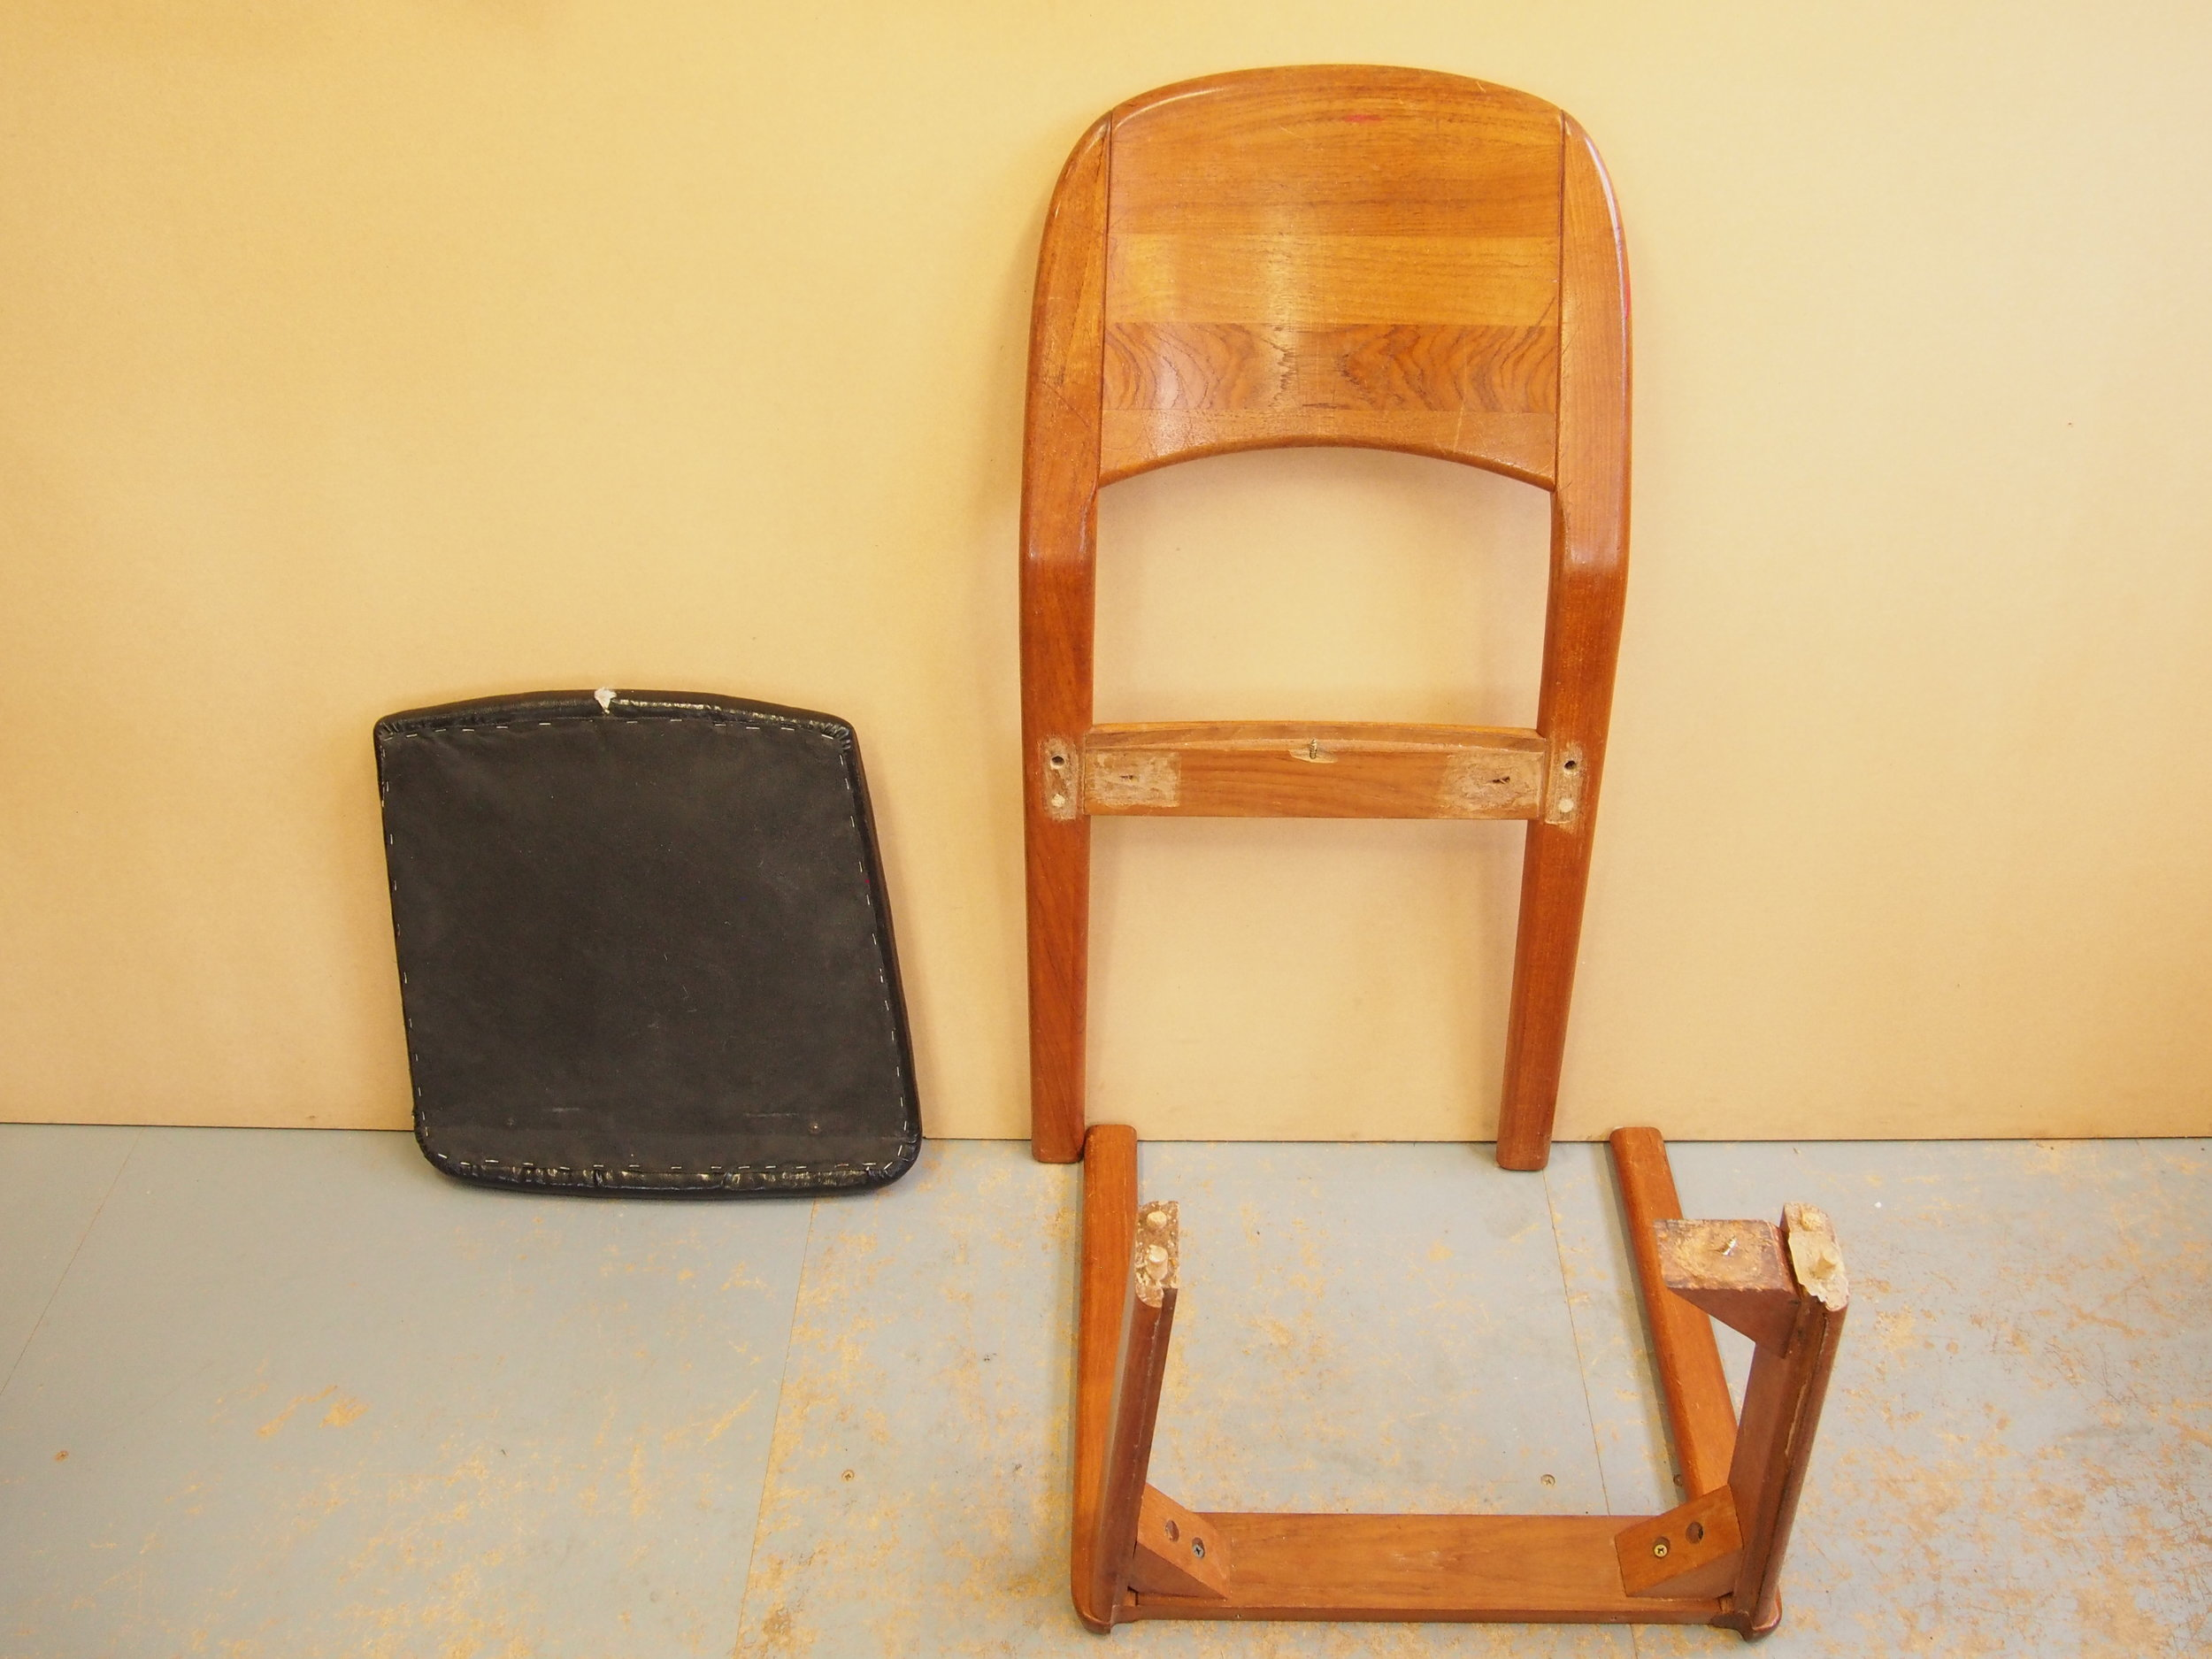 The joints were loose and broken, only held in by the screwed in corner blocks. The joints were to be repaired and the chair to be back to its functional use again..